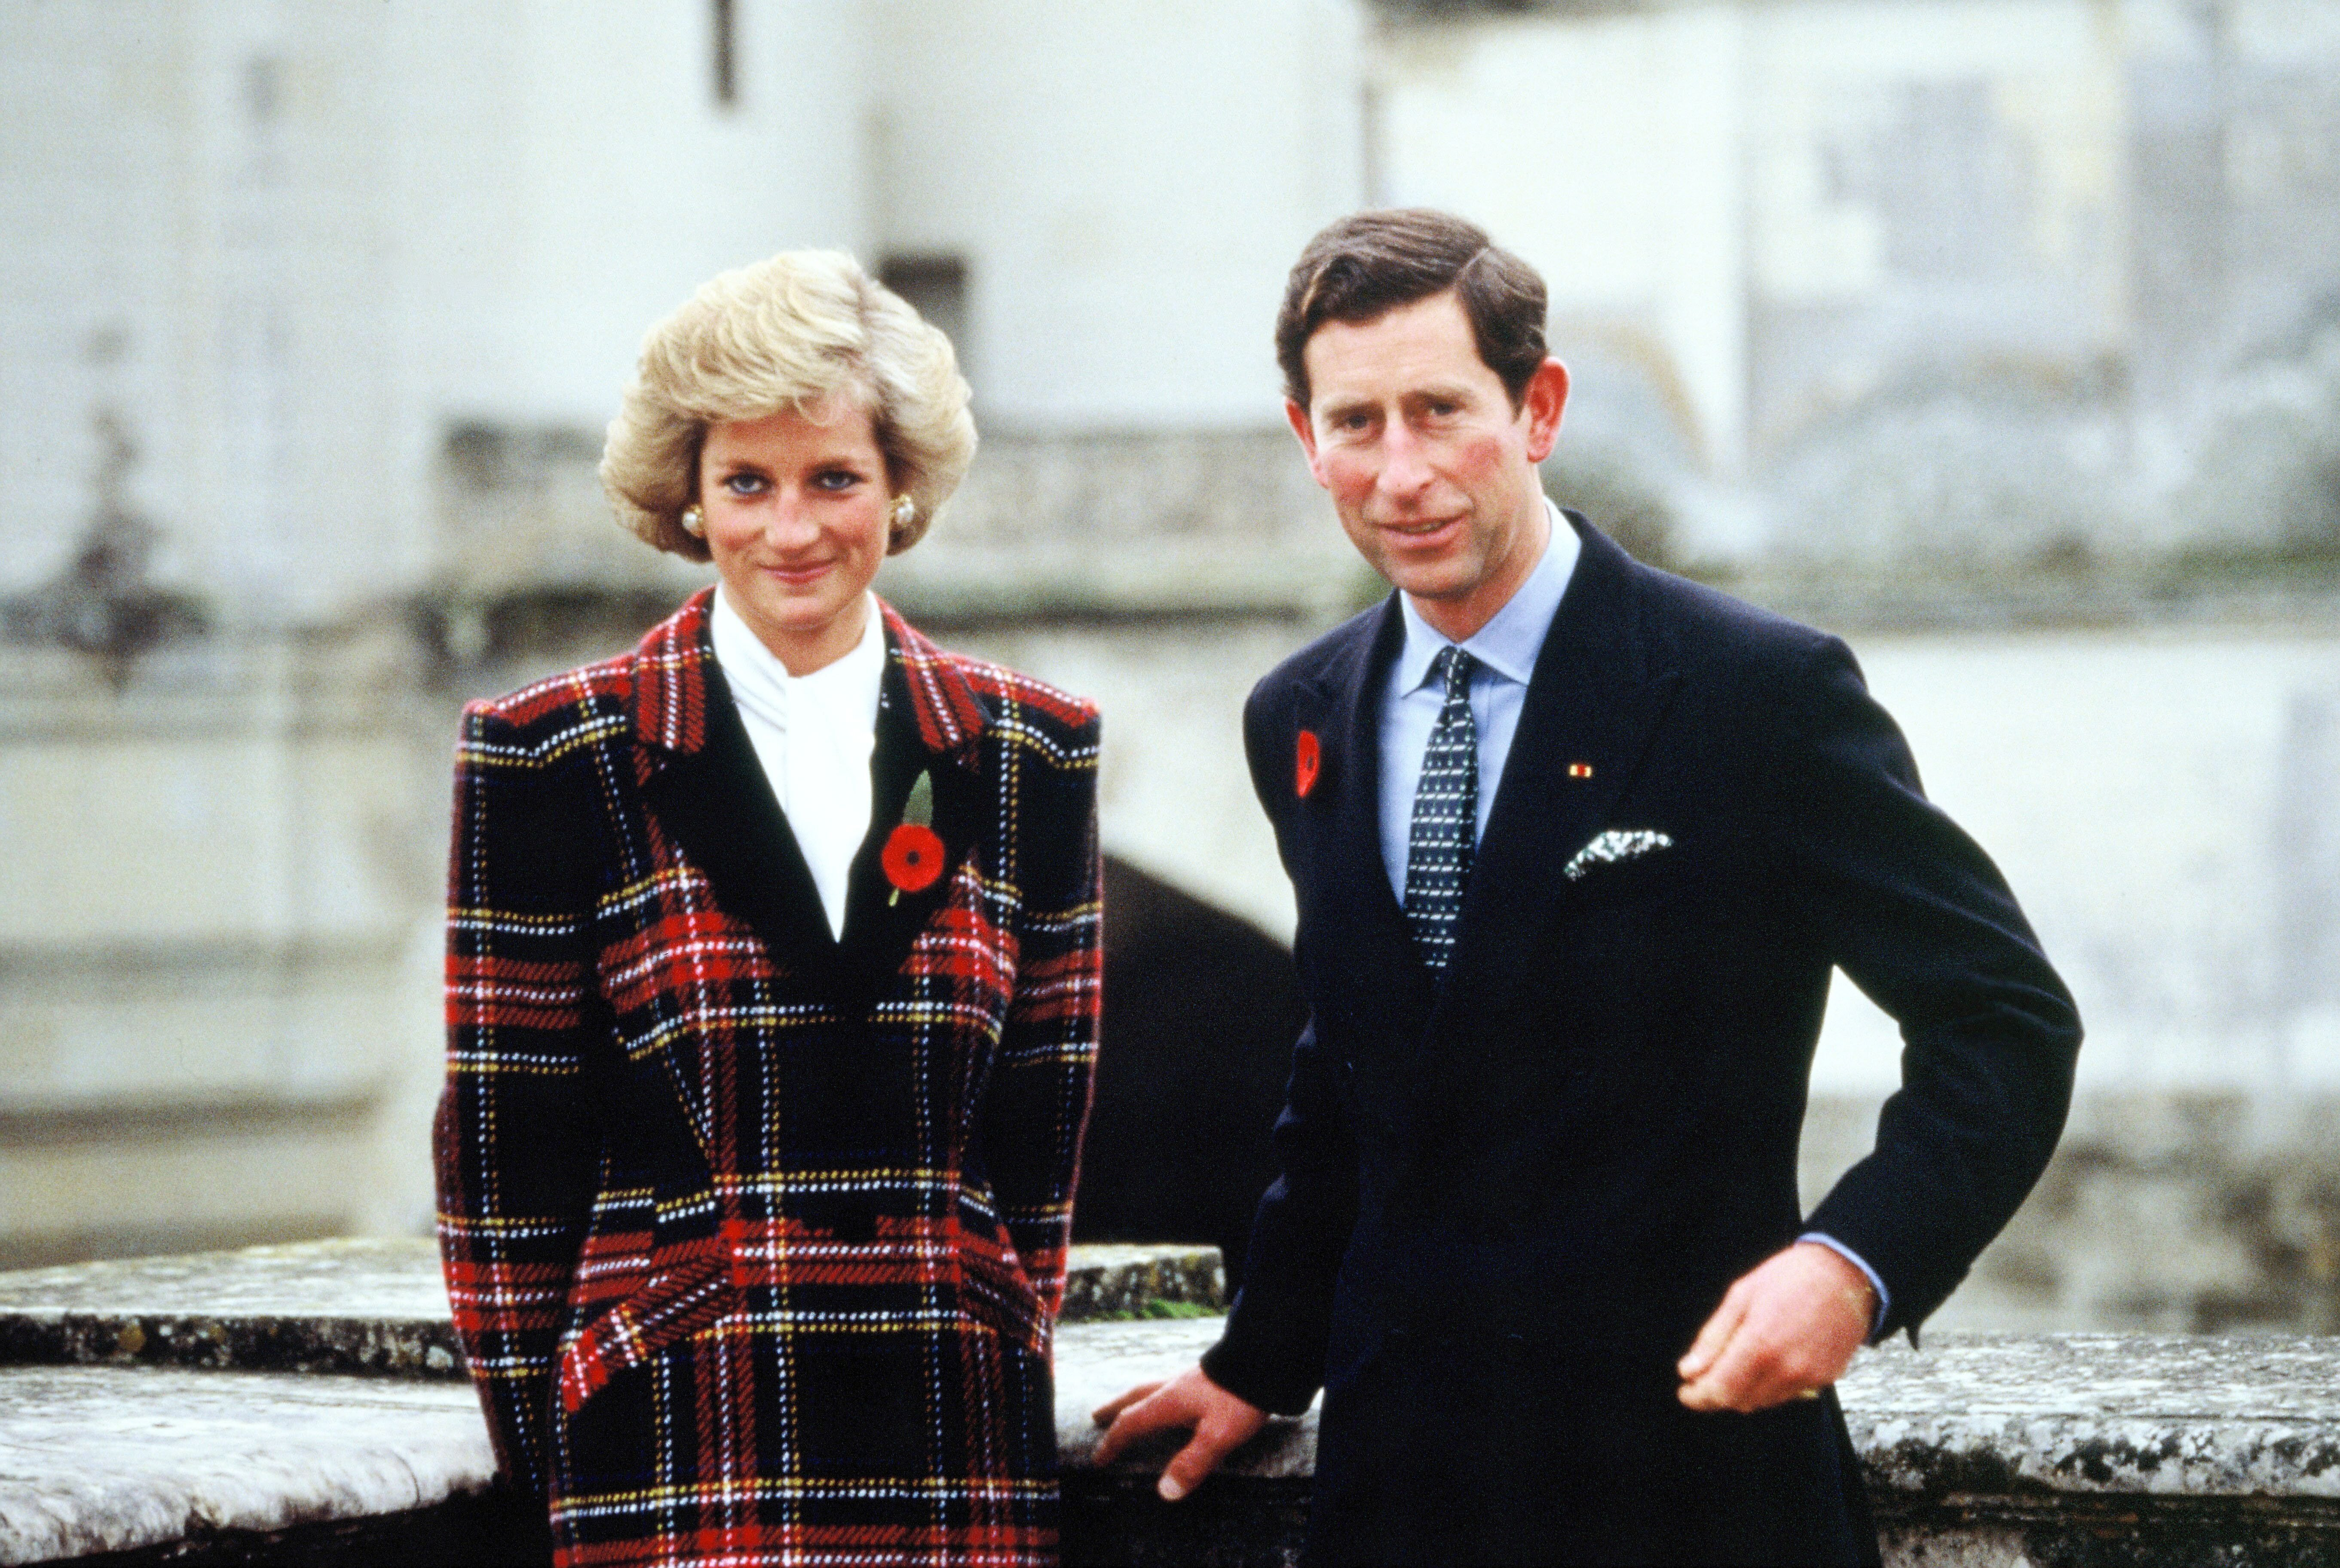 Charles and Diana, Prince and Princess of Wales, pose outside Chateau de Chambord. | Source: Getty Images